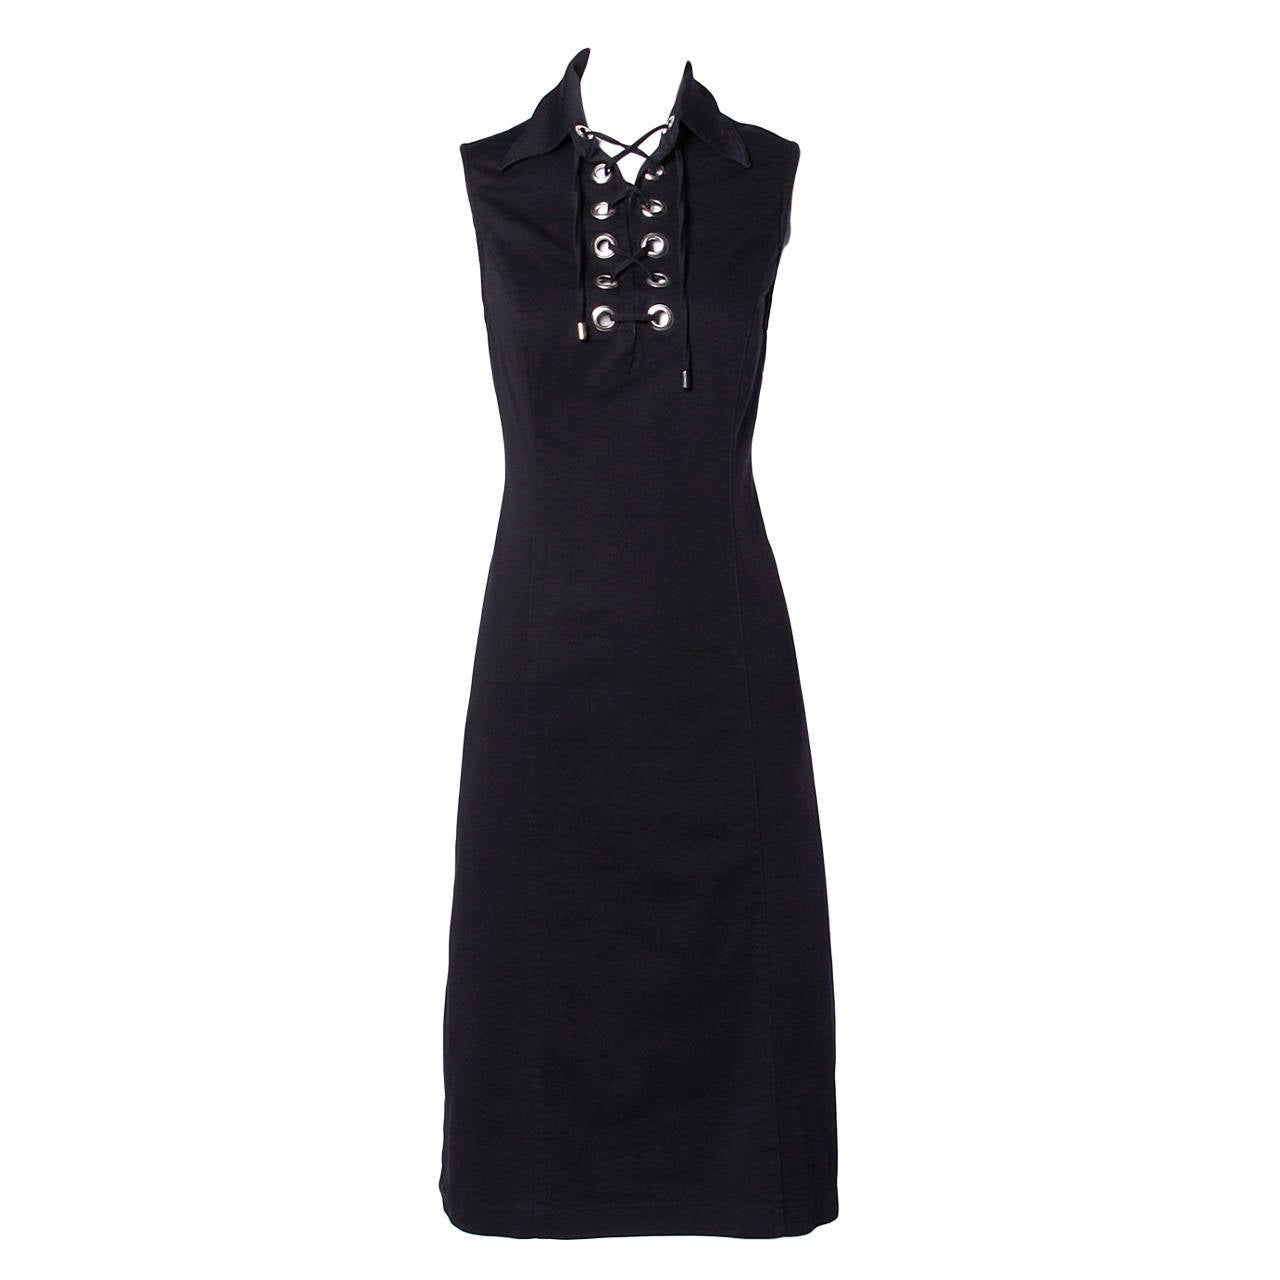 Moschino Vintage 1990s 90s Black Lace Up Grommet Sheath Dress 1